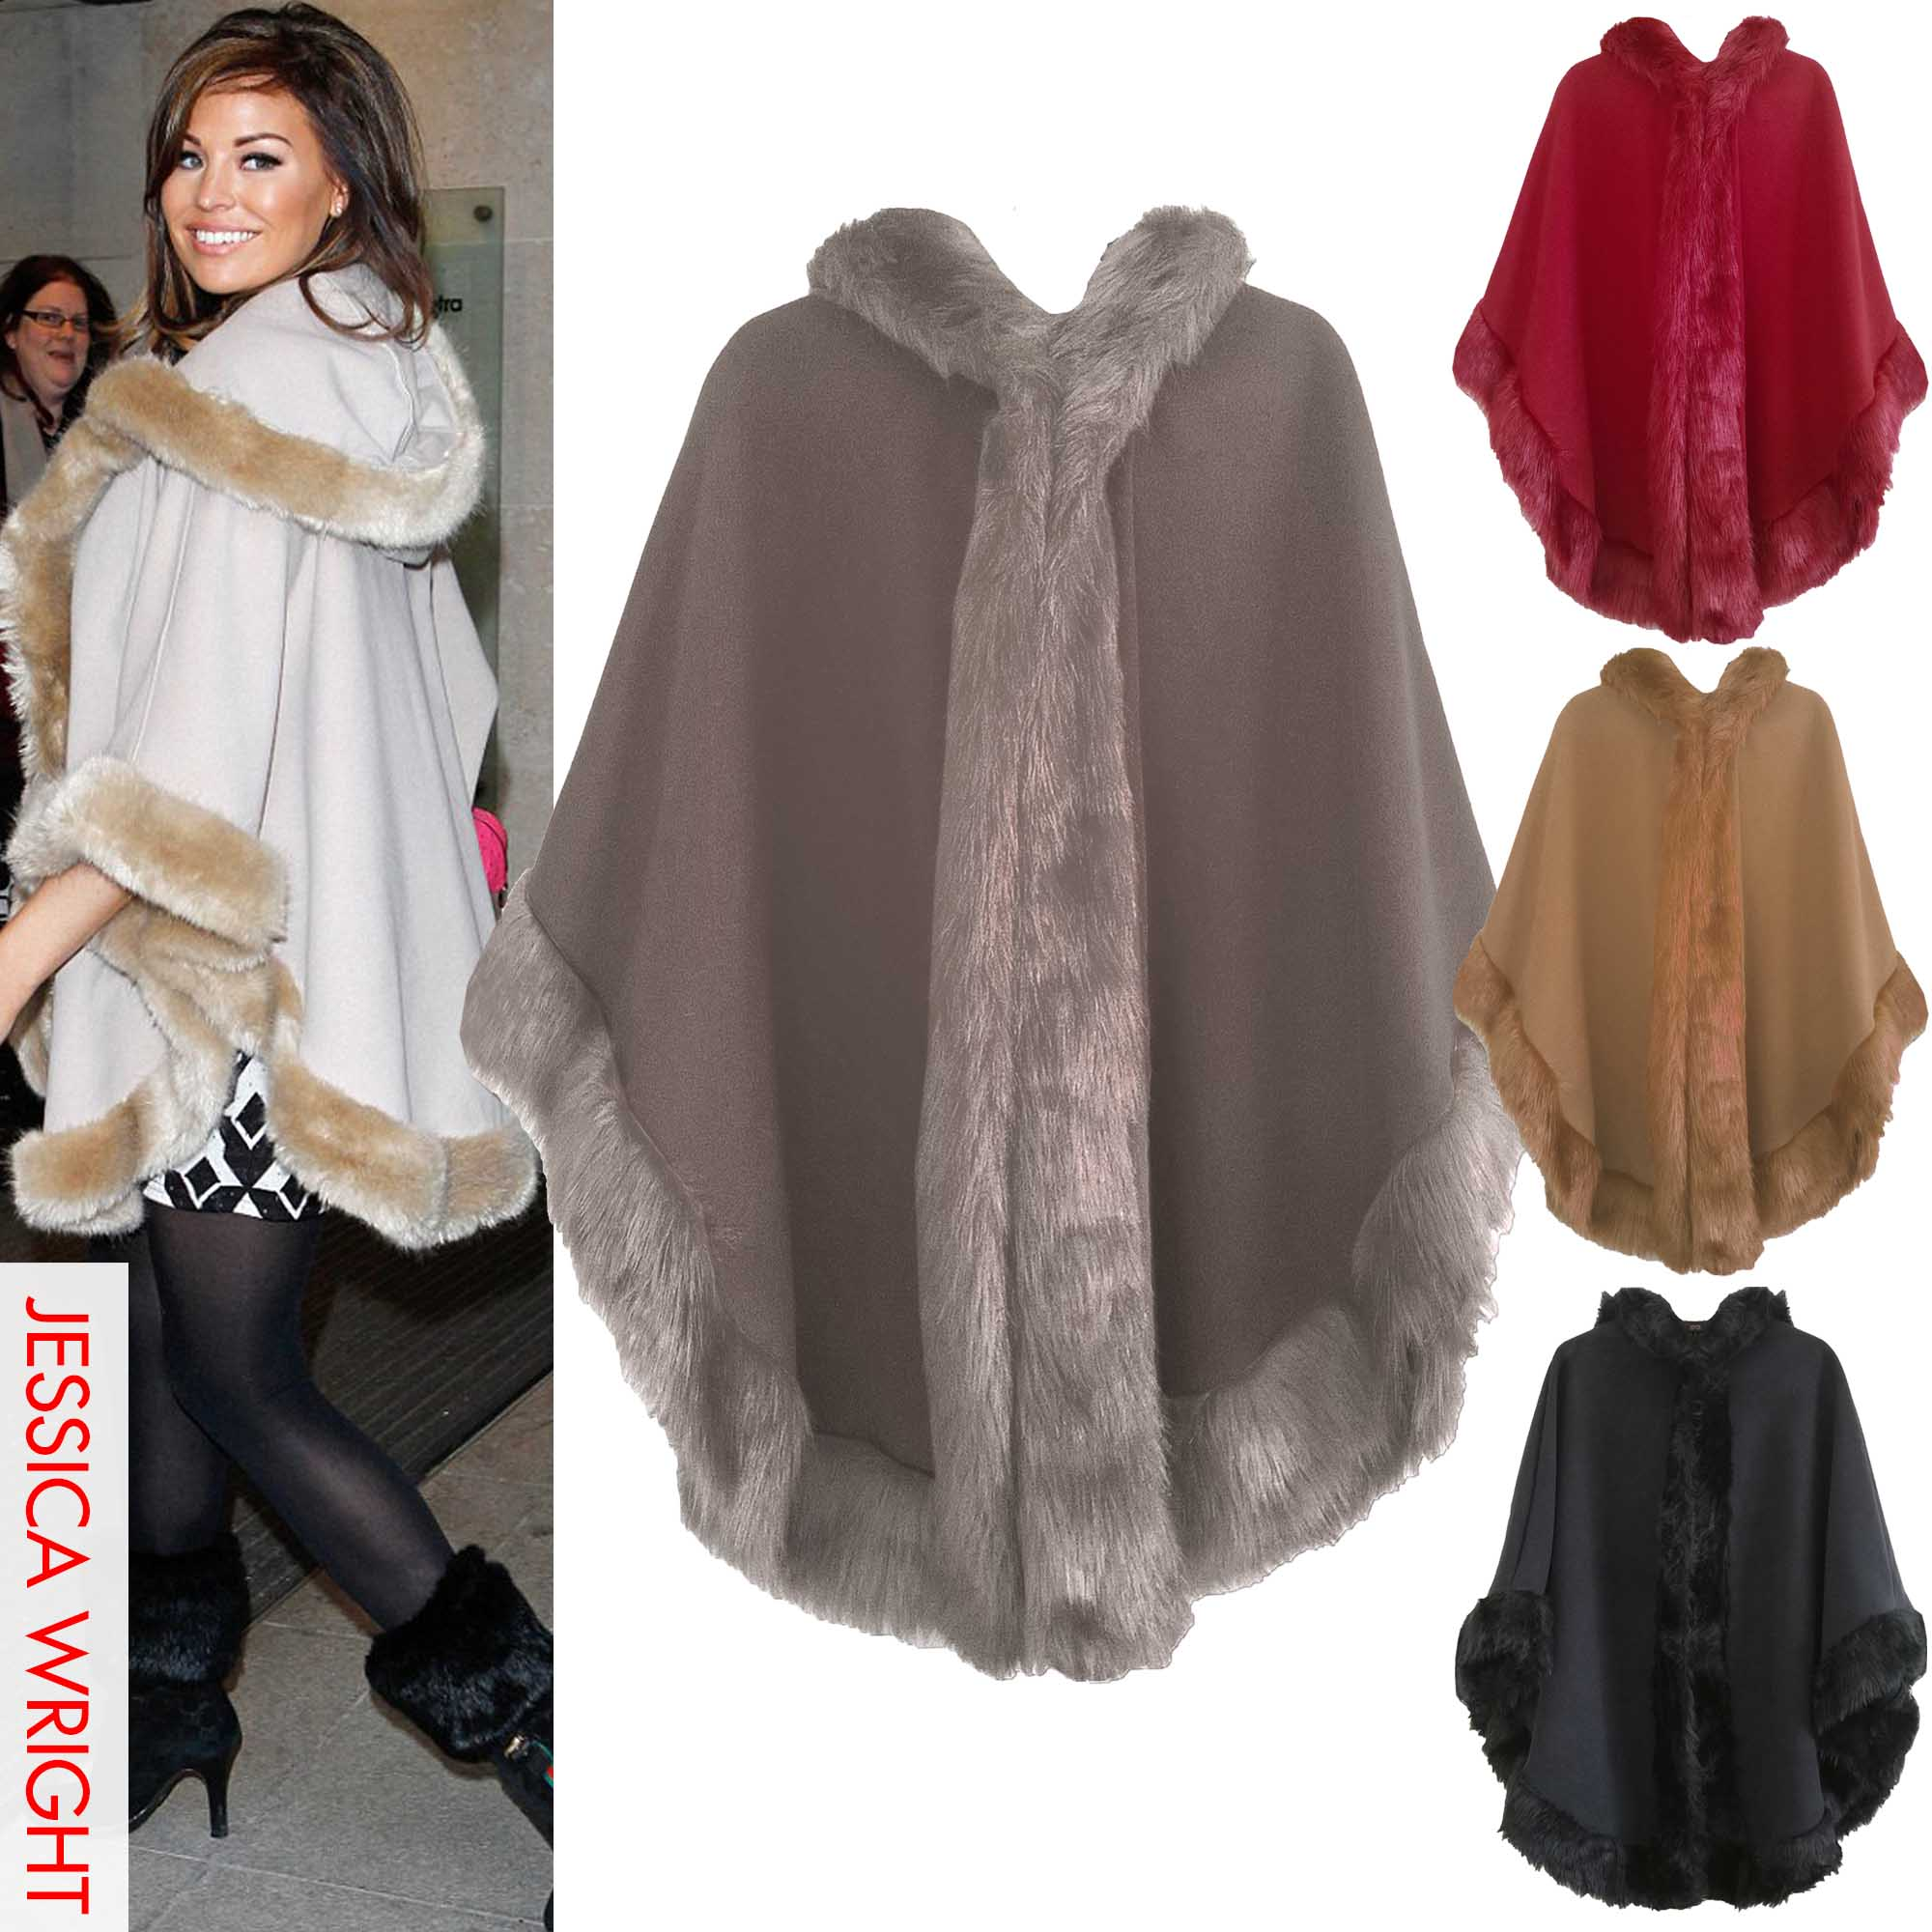 You searched for: ladies fur cape! Etsy is the home to thousands of handmade, vintage, and one-of-a-kind products and gifts related to your search. No matter what you're looking for or where you are in the world, our global marketplace of sellers can help you find unique and affordable options. Let's get started!